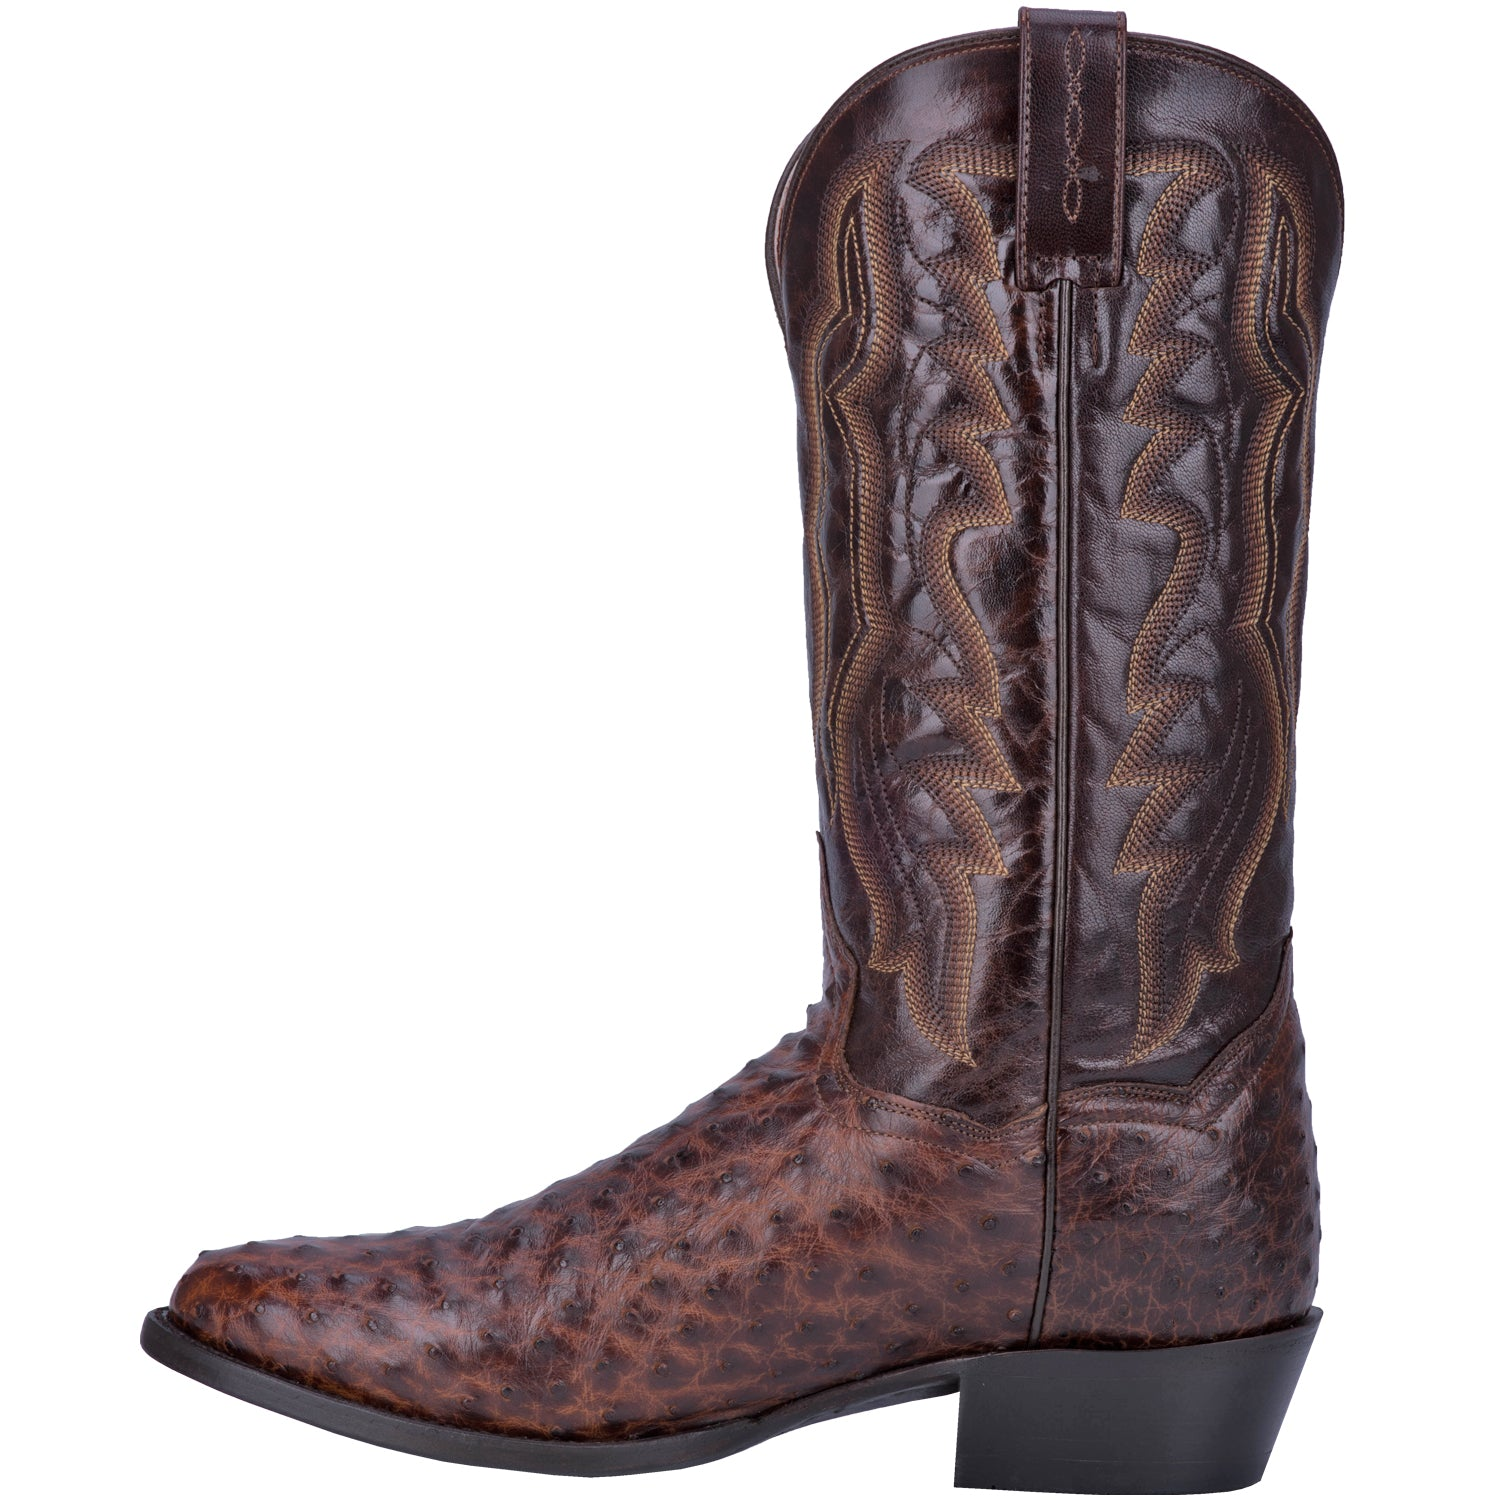 PERSHING FULL QUILL OSTRICH BOOT